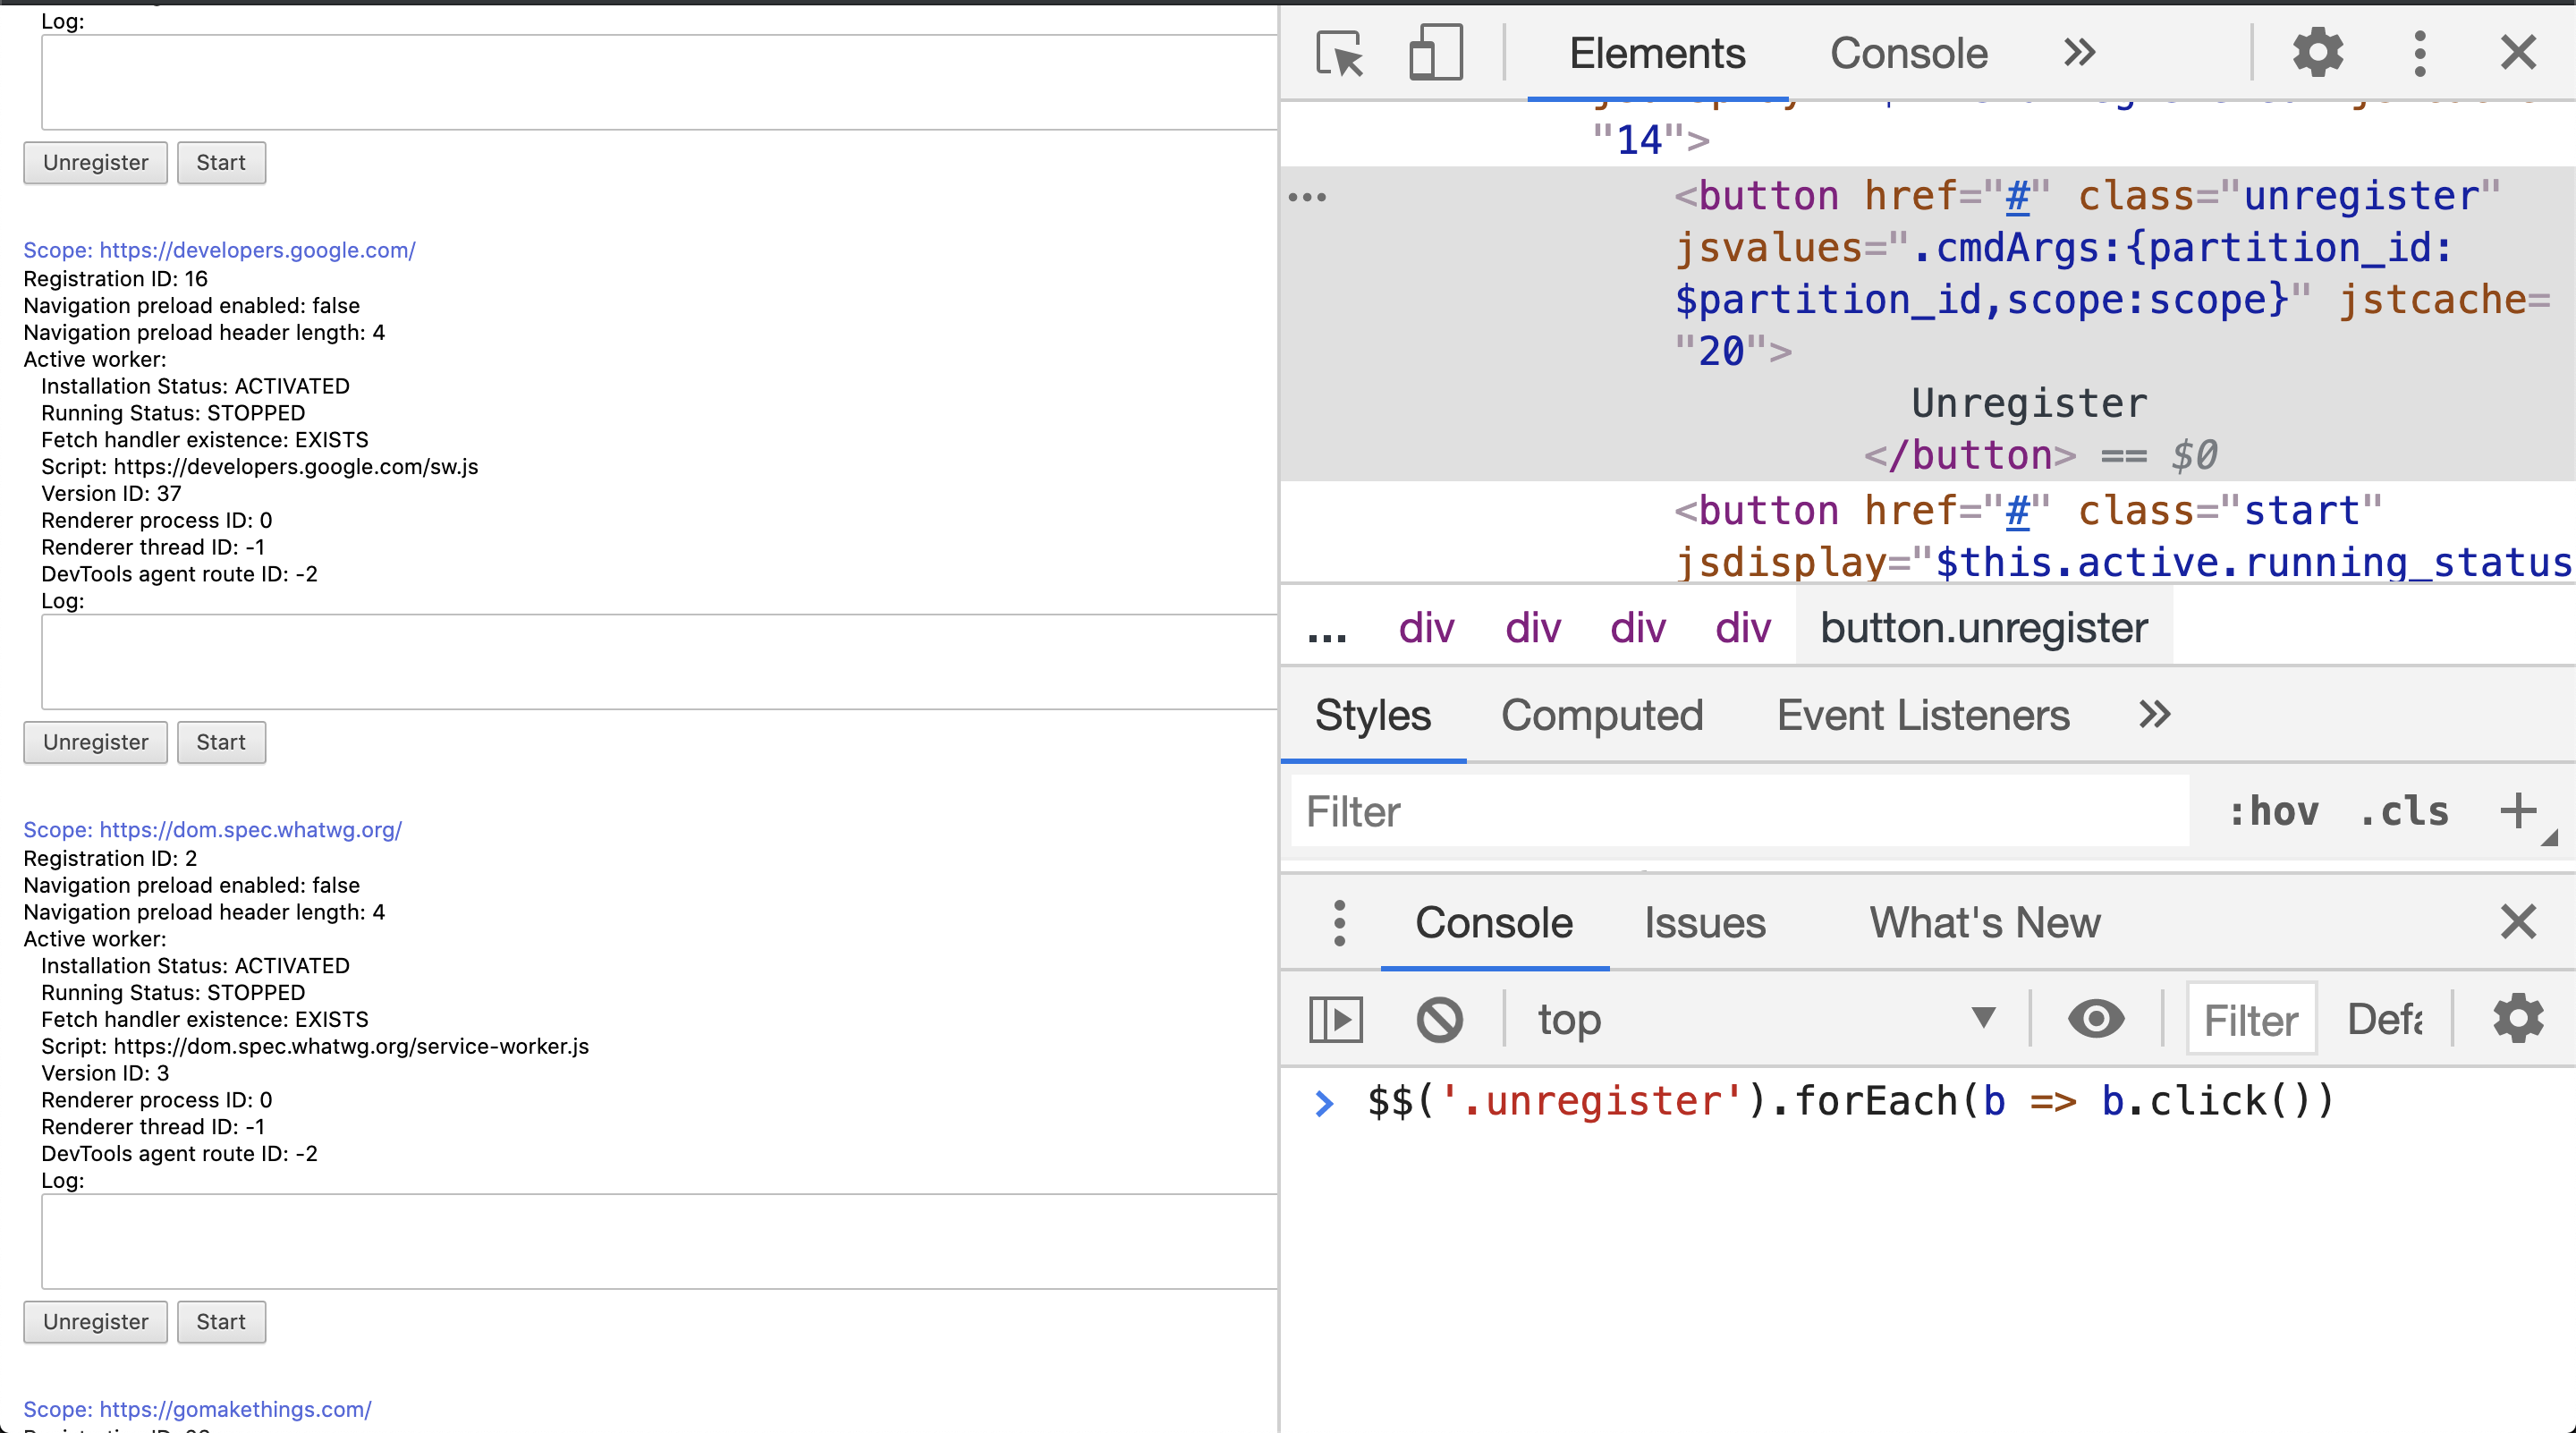 Overview page of chrome://serviceworker-internals/ with open JS Console